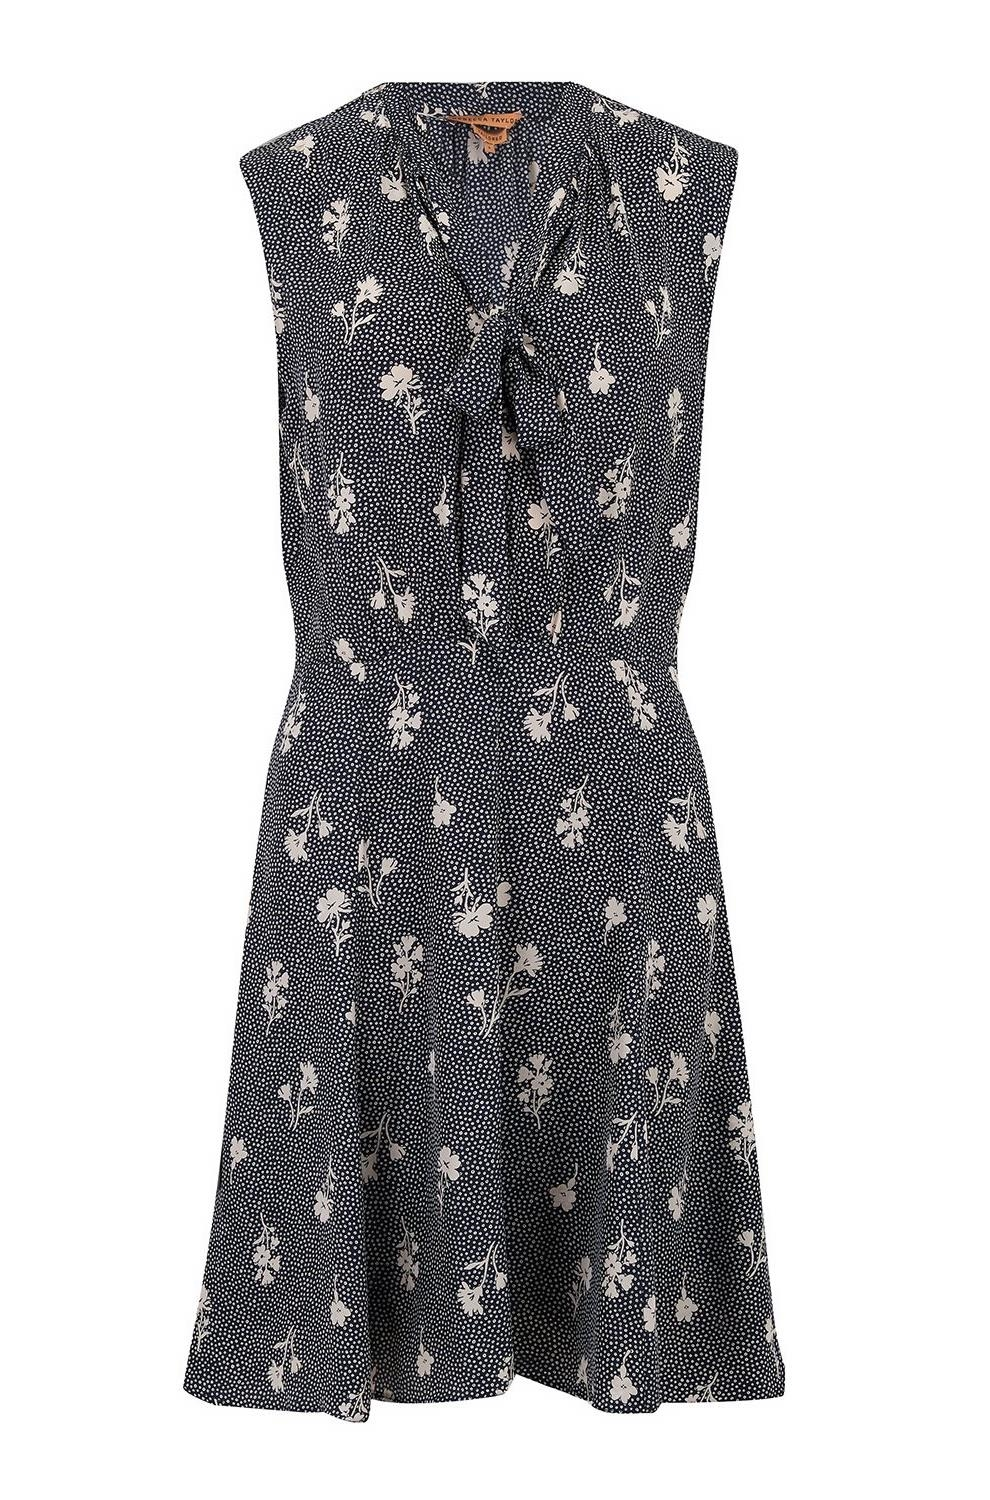 2ae7dcc233 Sleeveless Wildflower Dress in Navy Combo